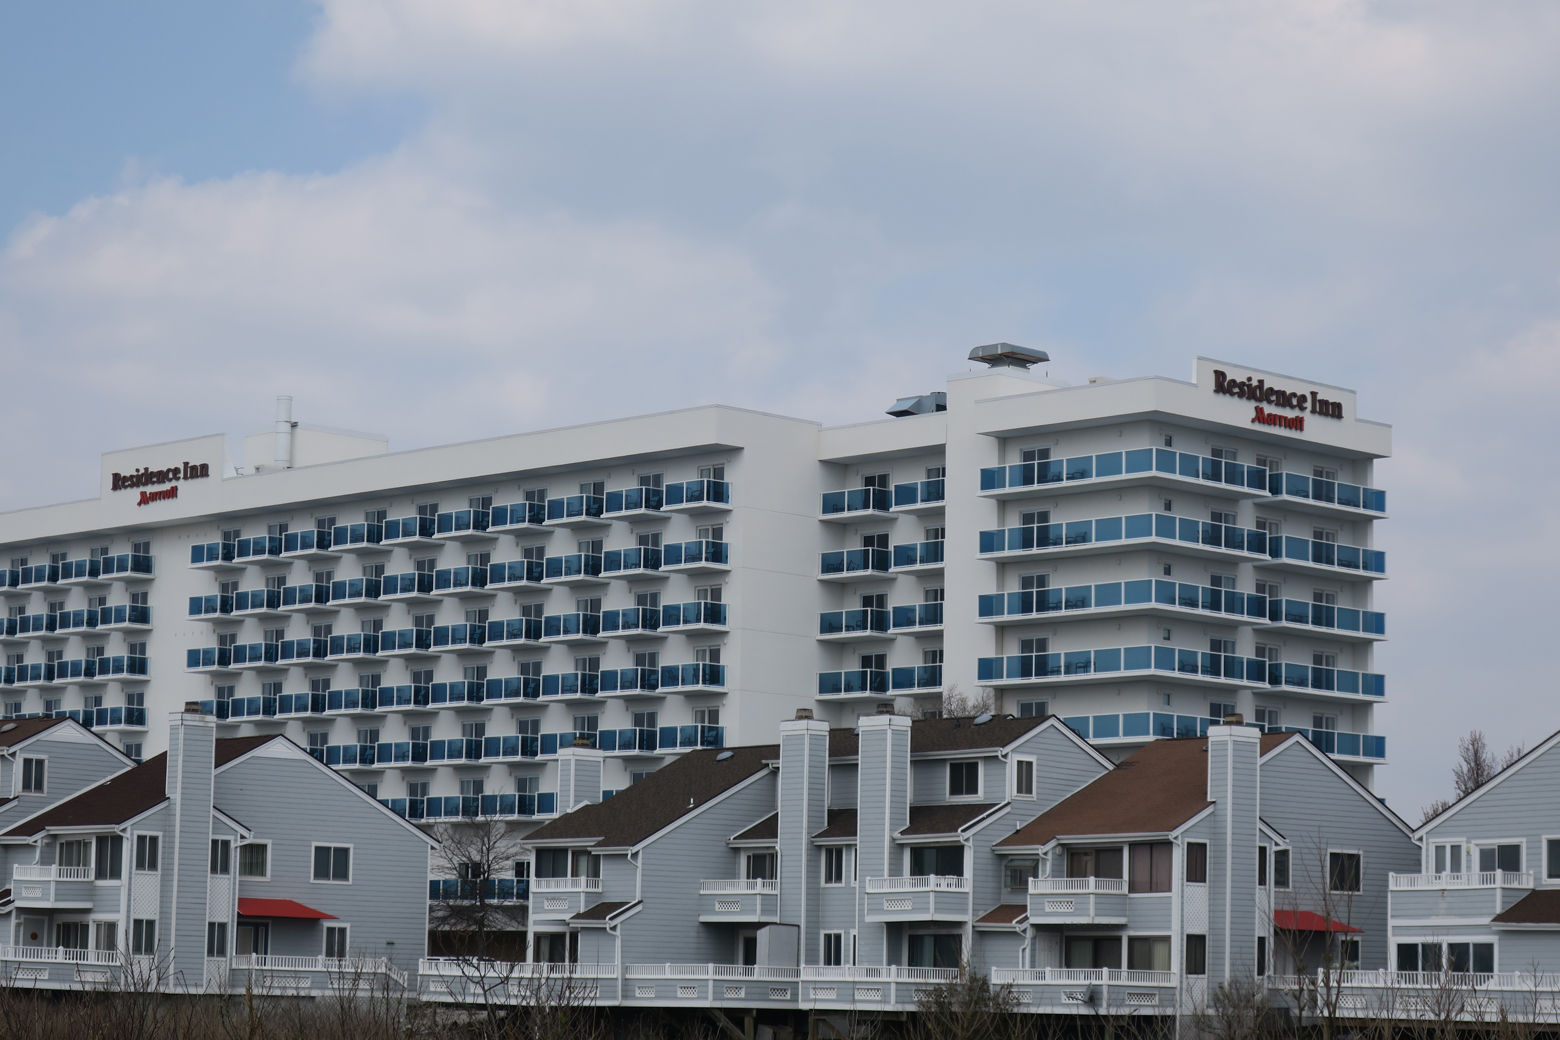 Ocean City Offers More Hotel Options Prices Remain Stable Wtop